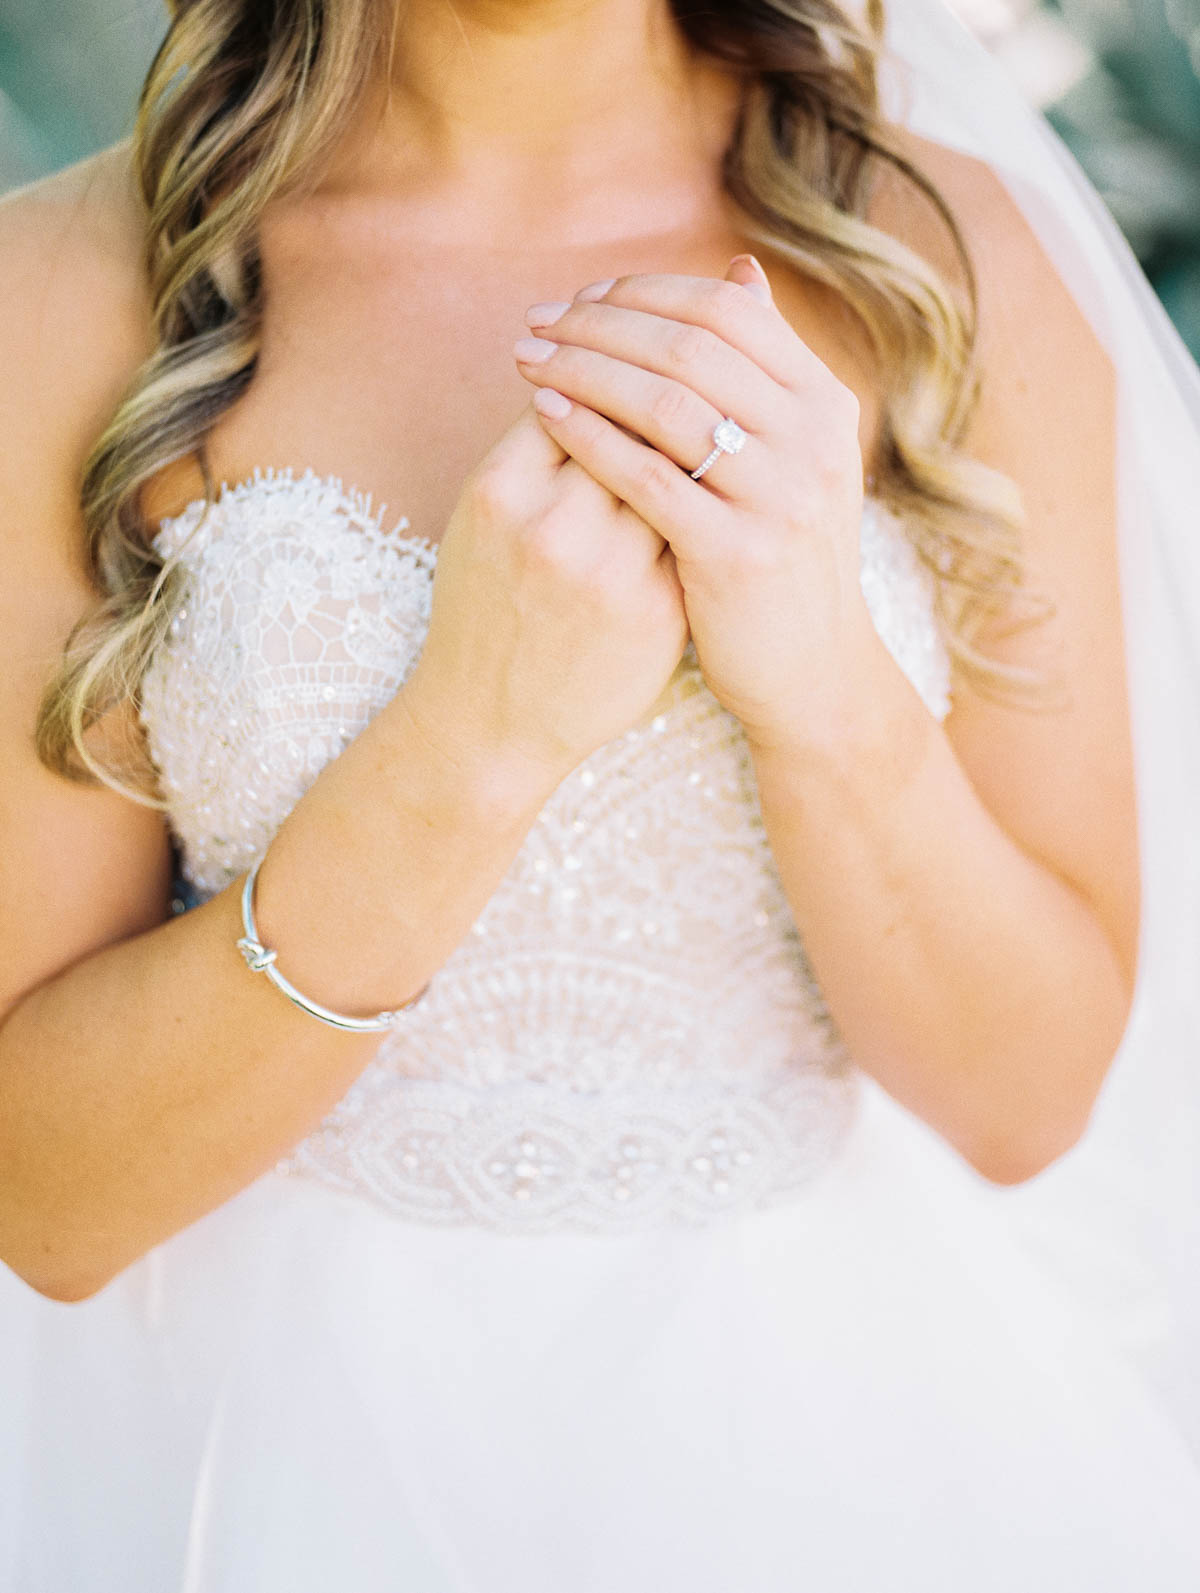 Gorgeous gown from J Bridal Boutique captured by Tucson Wedding Photographers Betsy & John